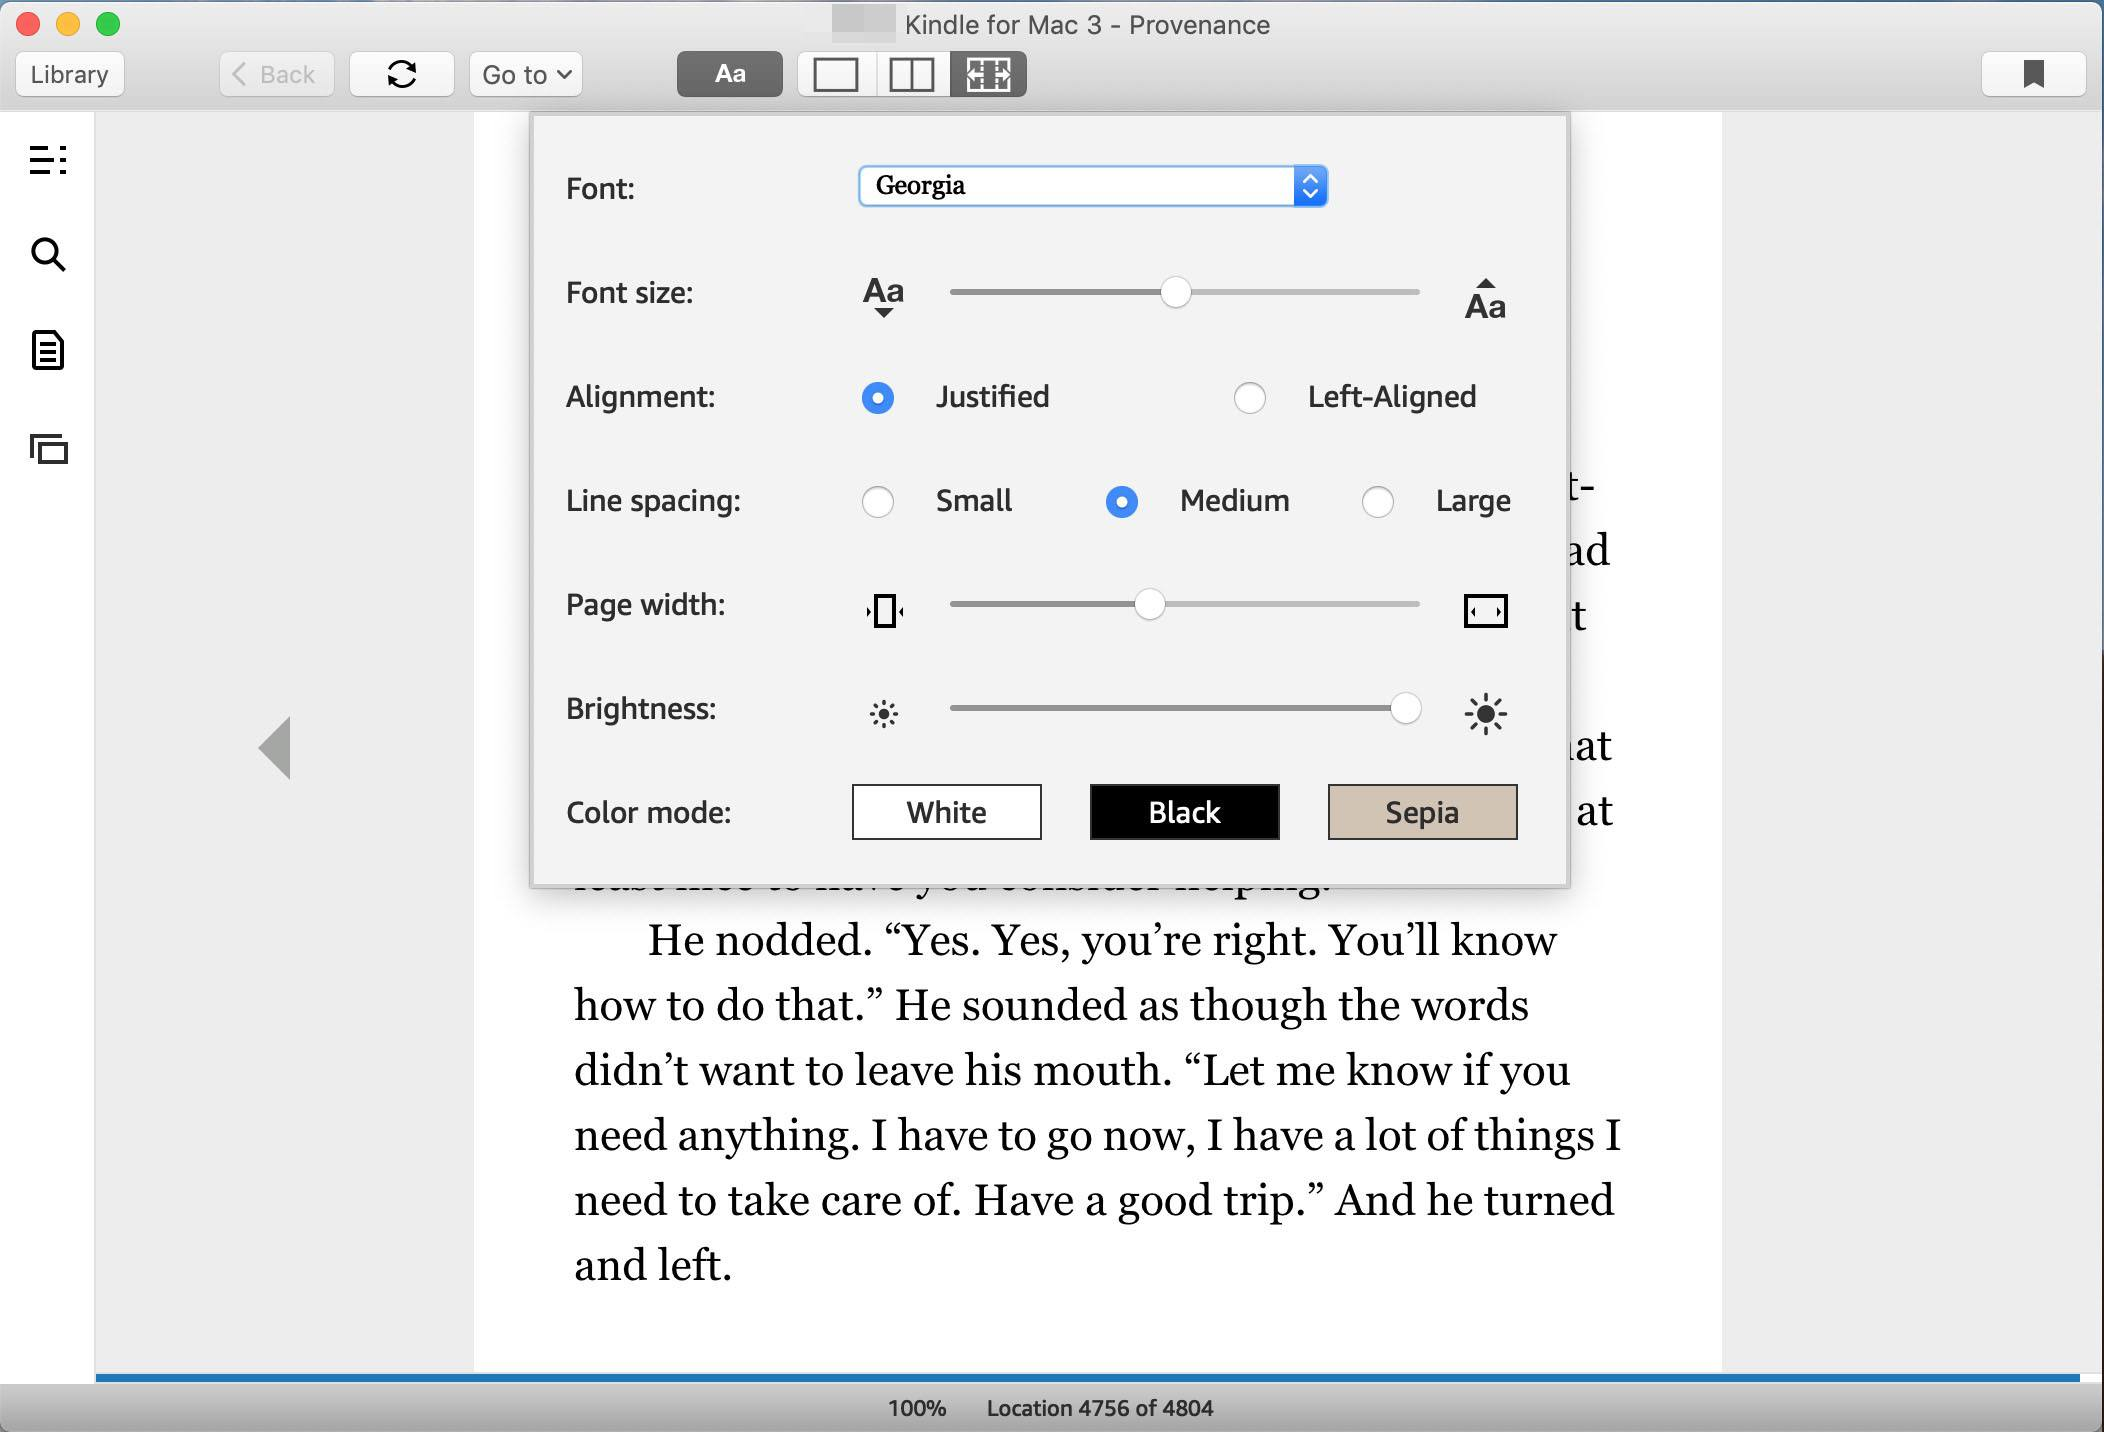 How to Use the Kindle App for Mac